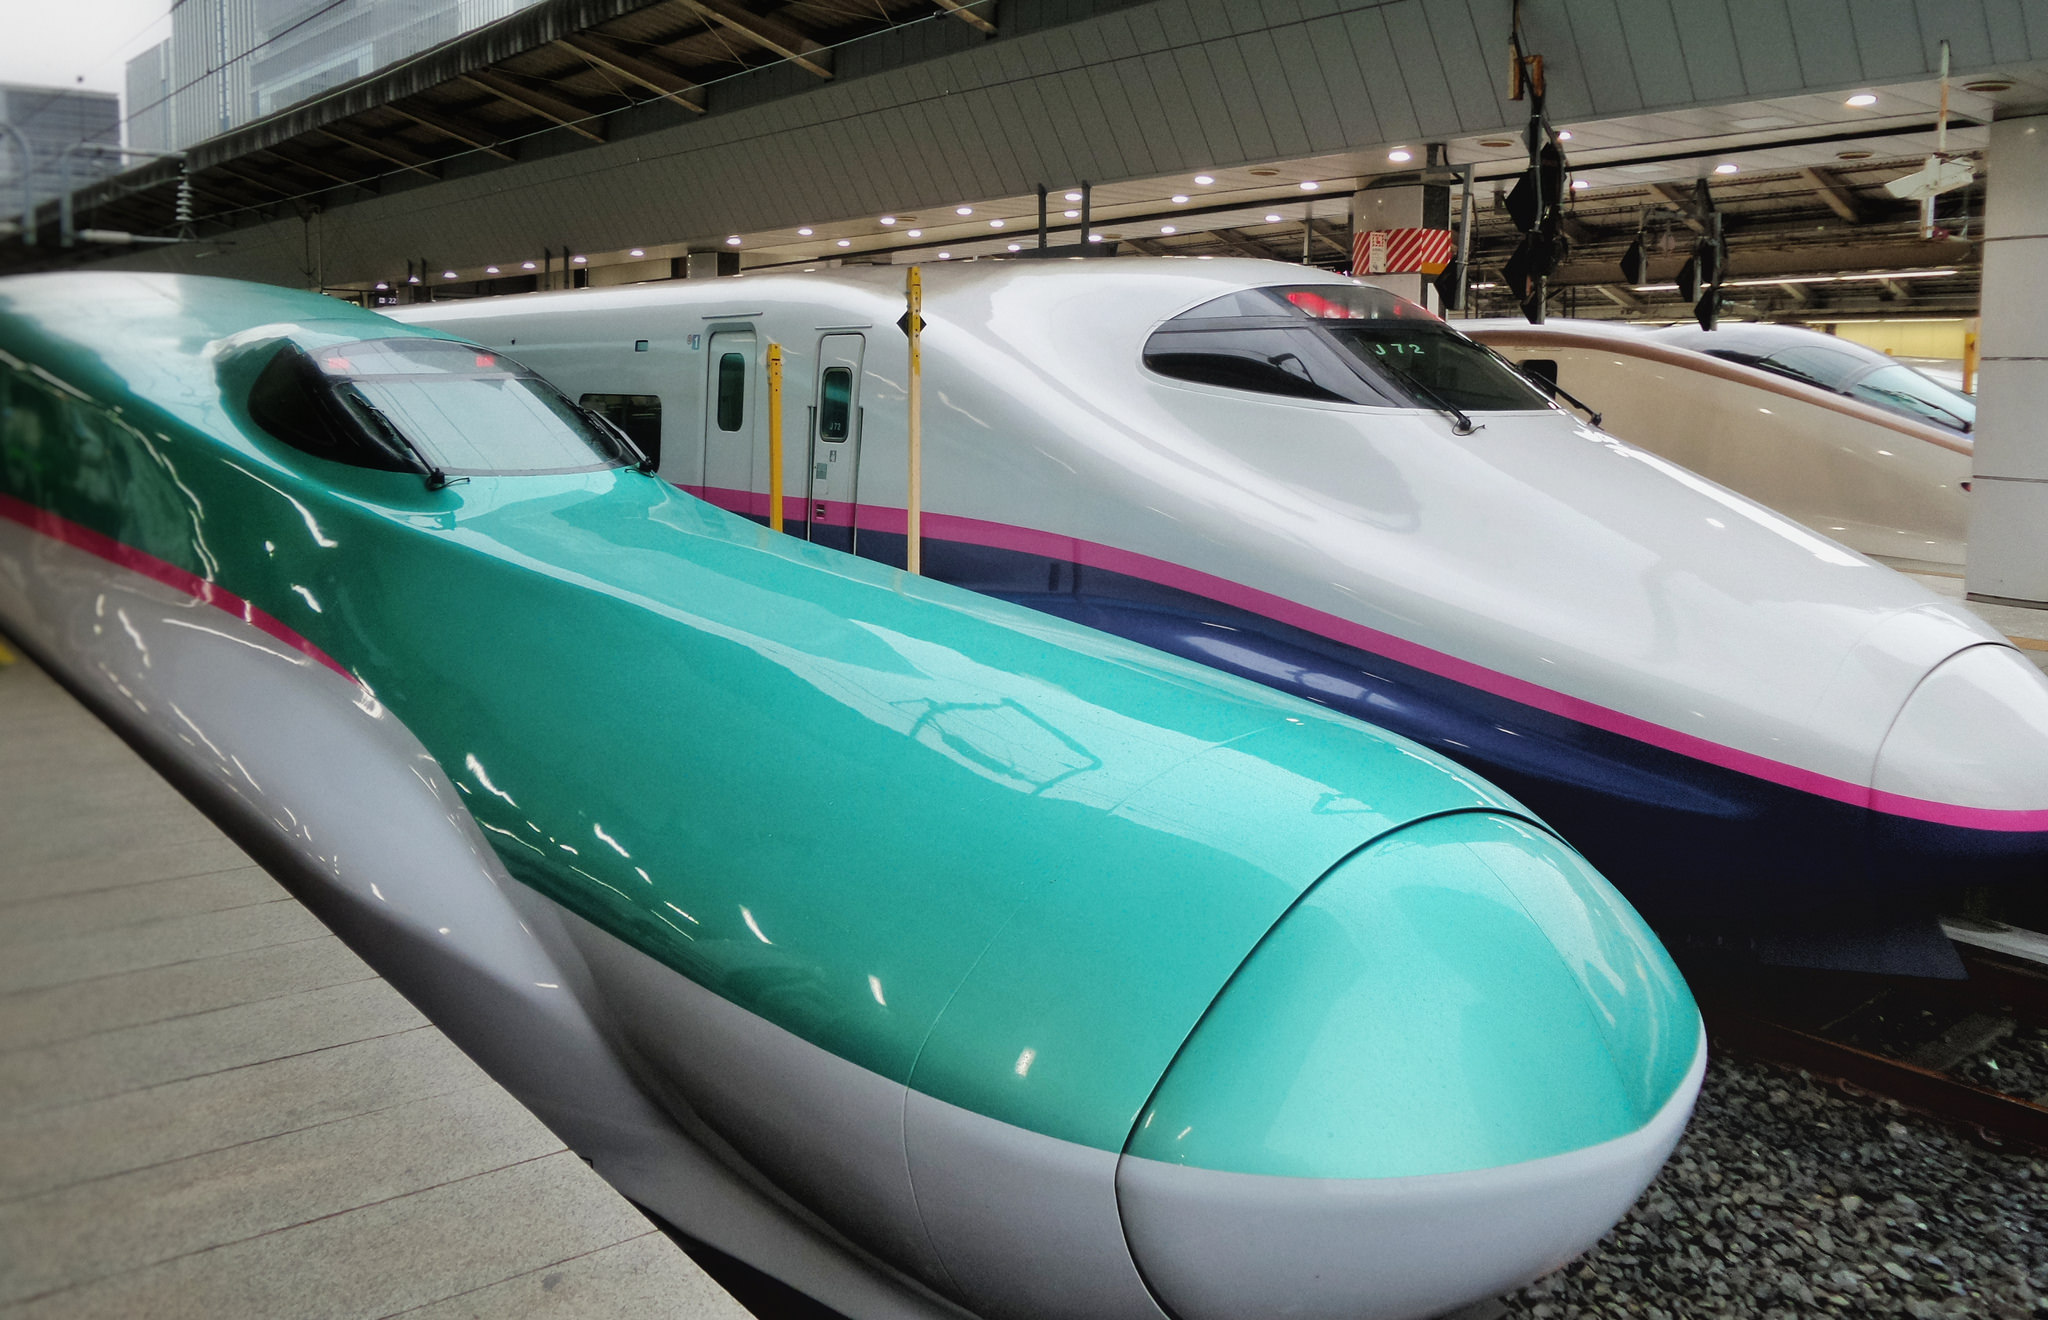 Free download high resolution image - free image free photo free stock image public domain picture -Shinkansen Hayabusa train and other in Tokyo Station, Japan